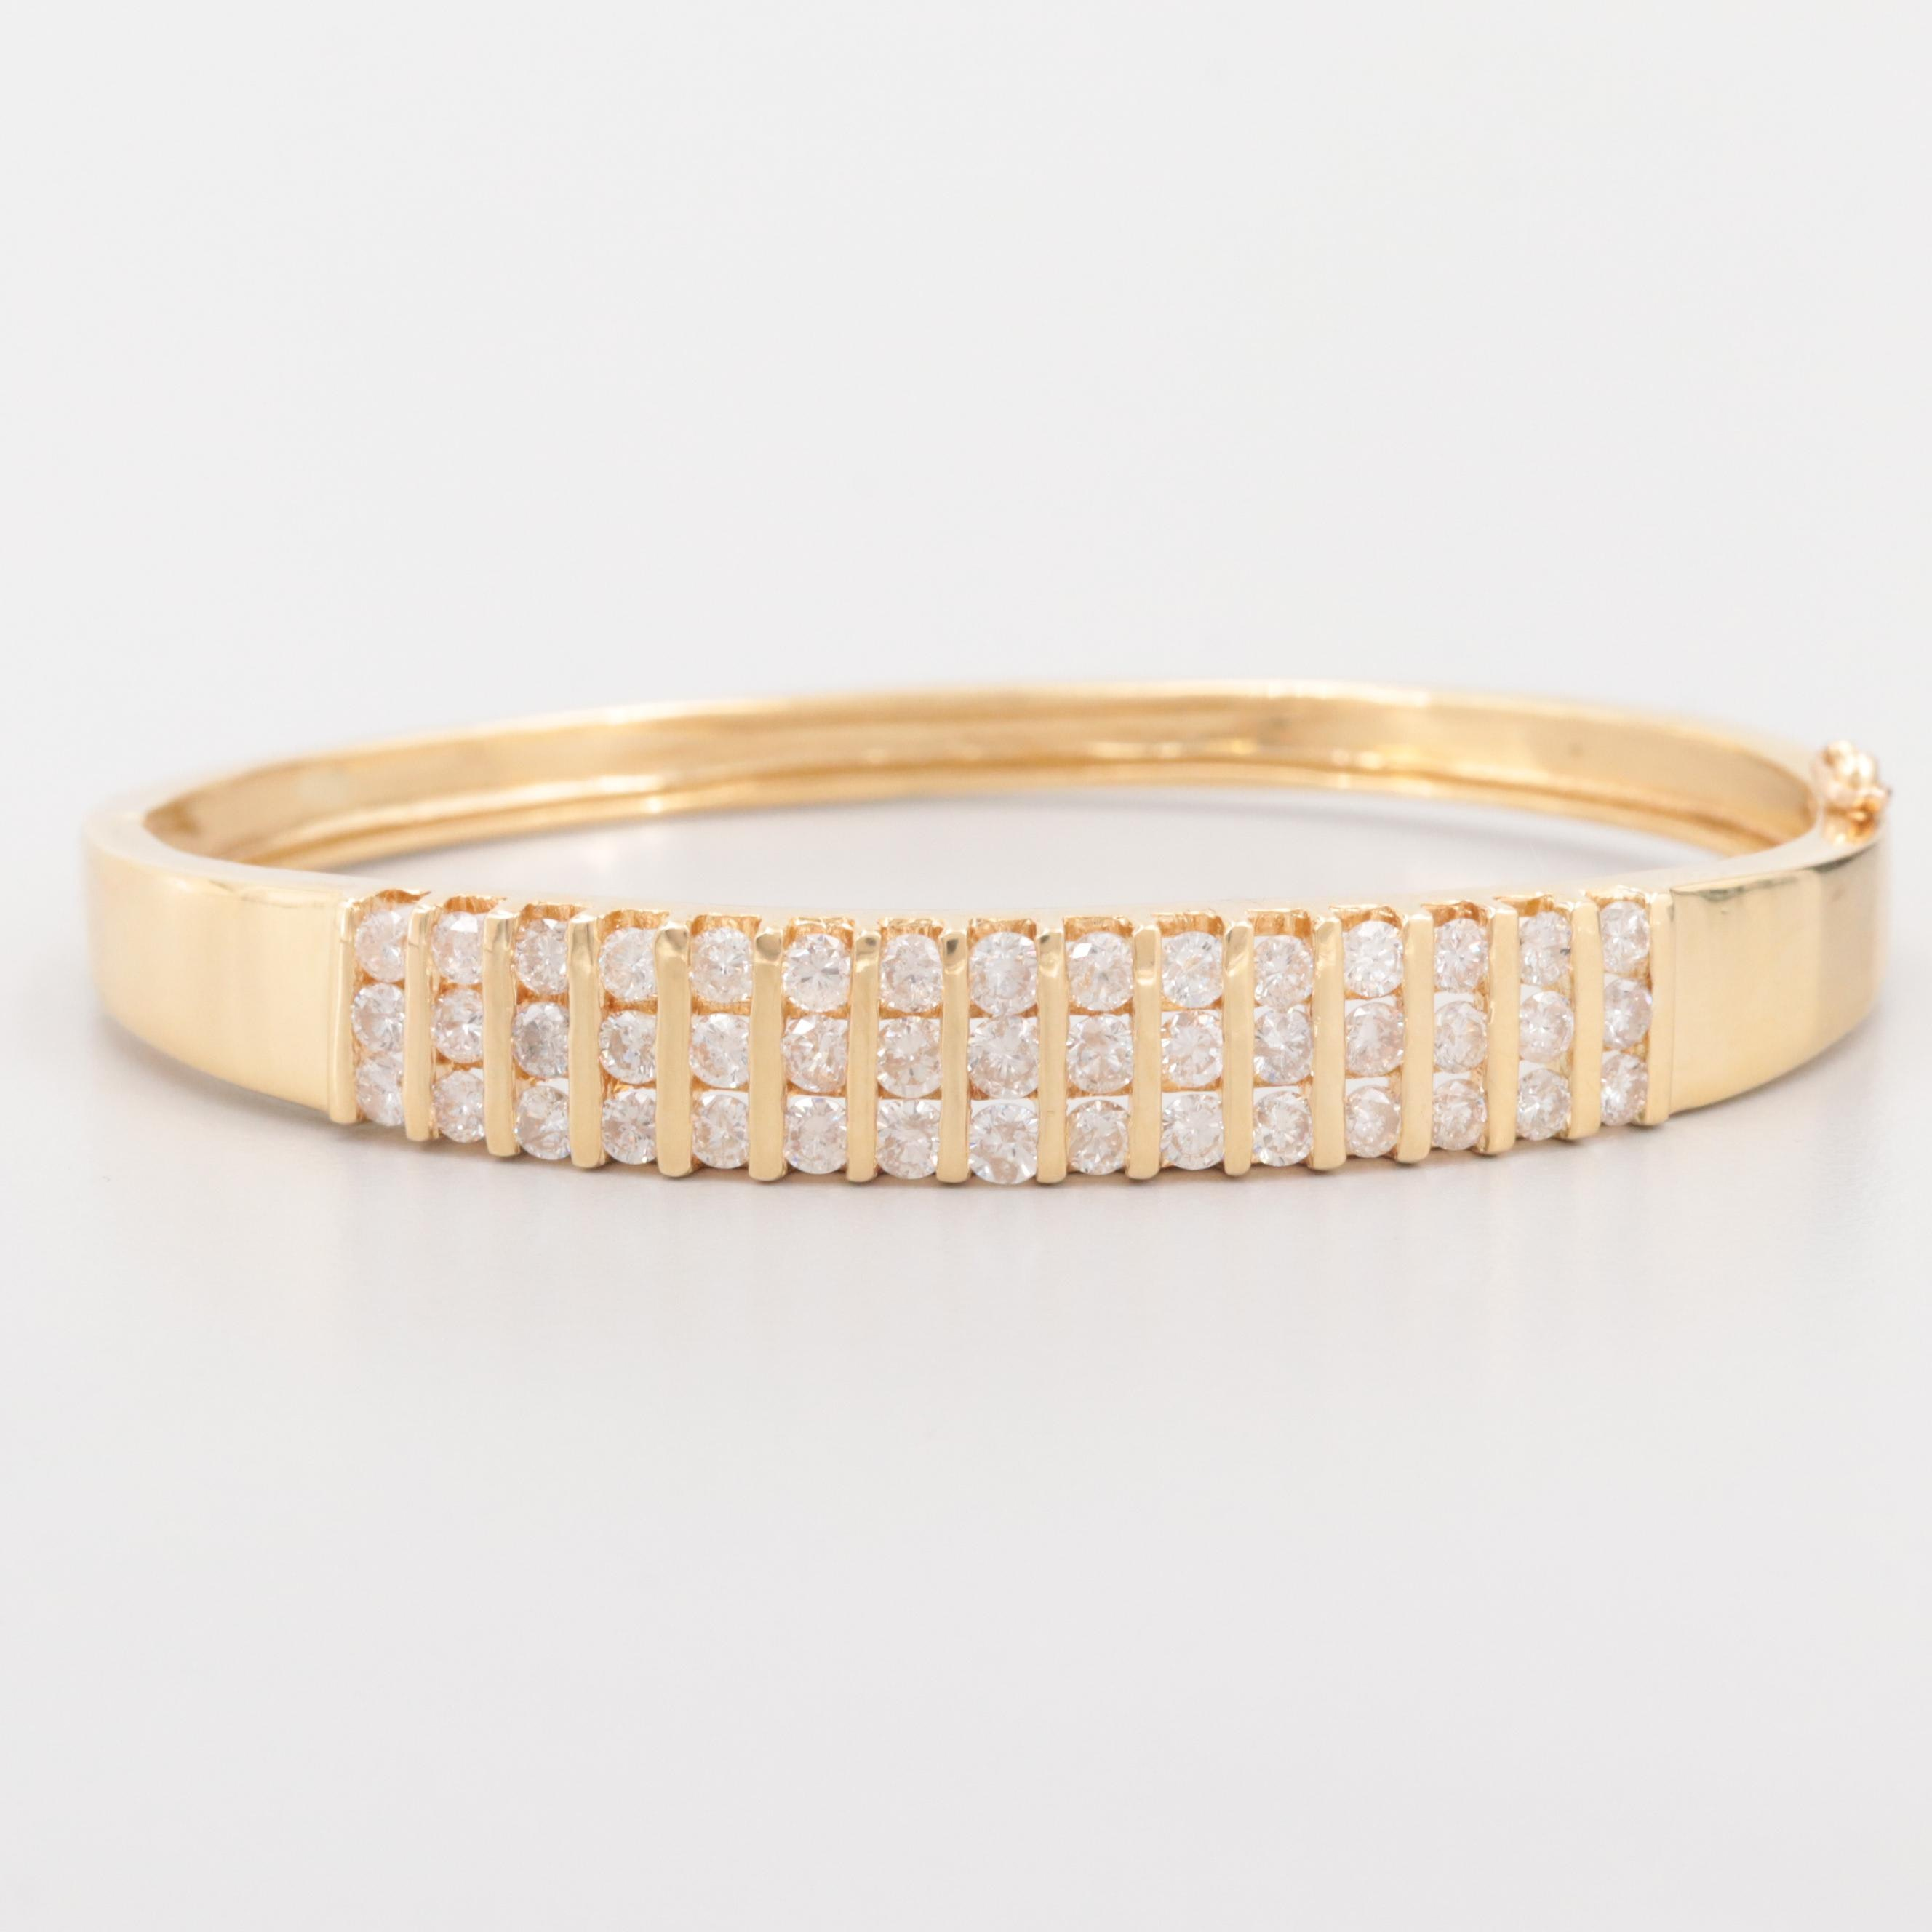 18K Yellow Gold 3.45 CTW Diamond Bangle Bracelet